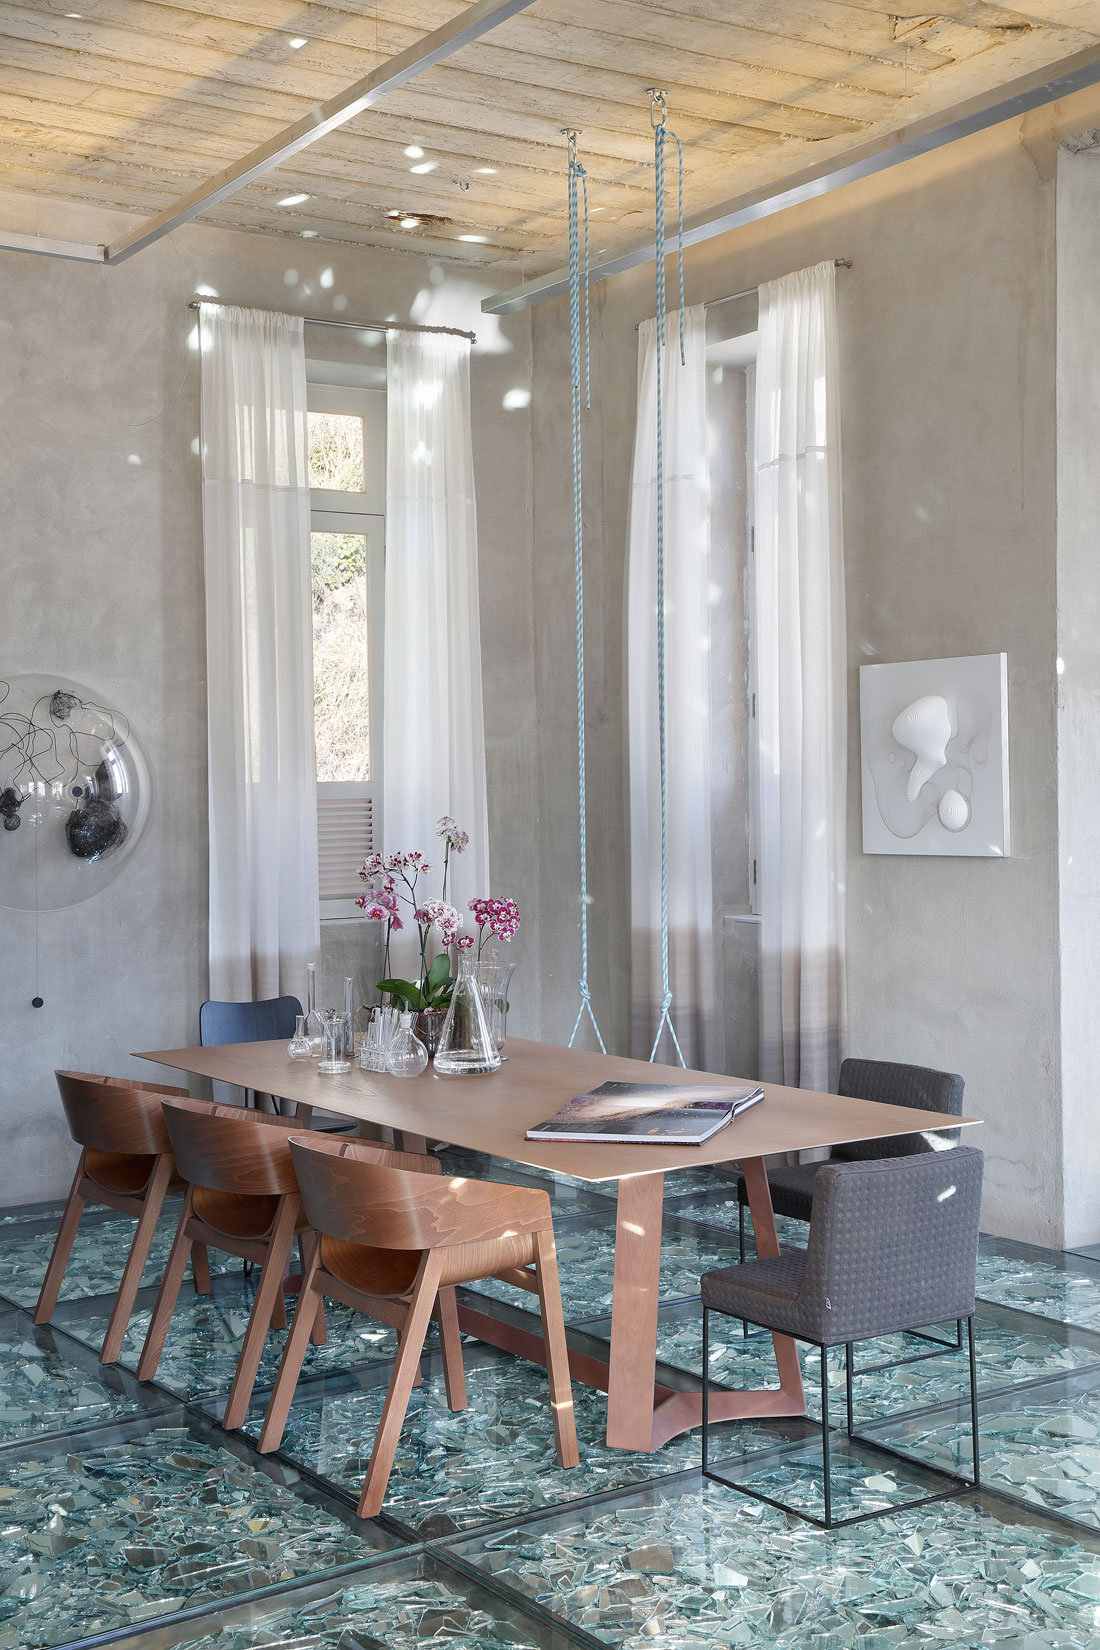 Stylish and Eclectic Design with Broken Glass Floor of Lab LZ for Casa Cor Rio 2015 by Giselle Taranto Architecture-24